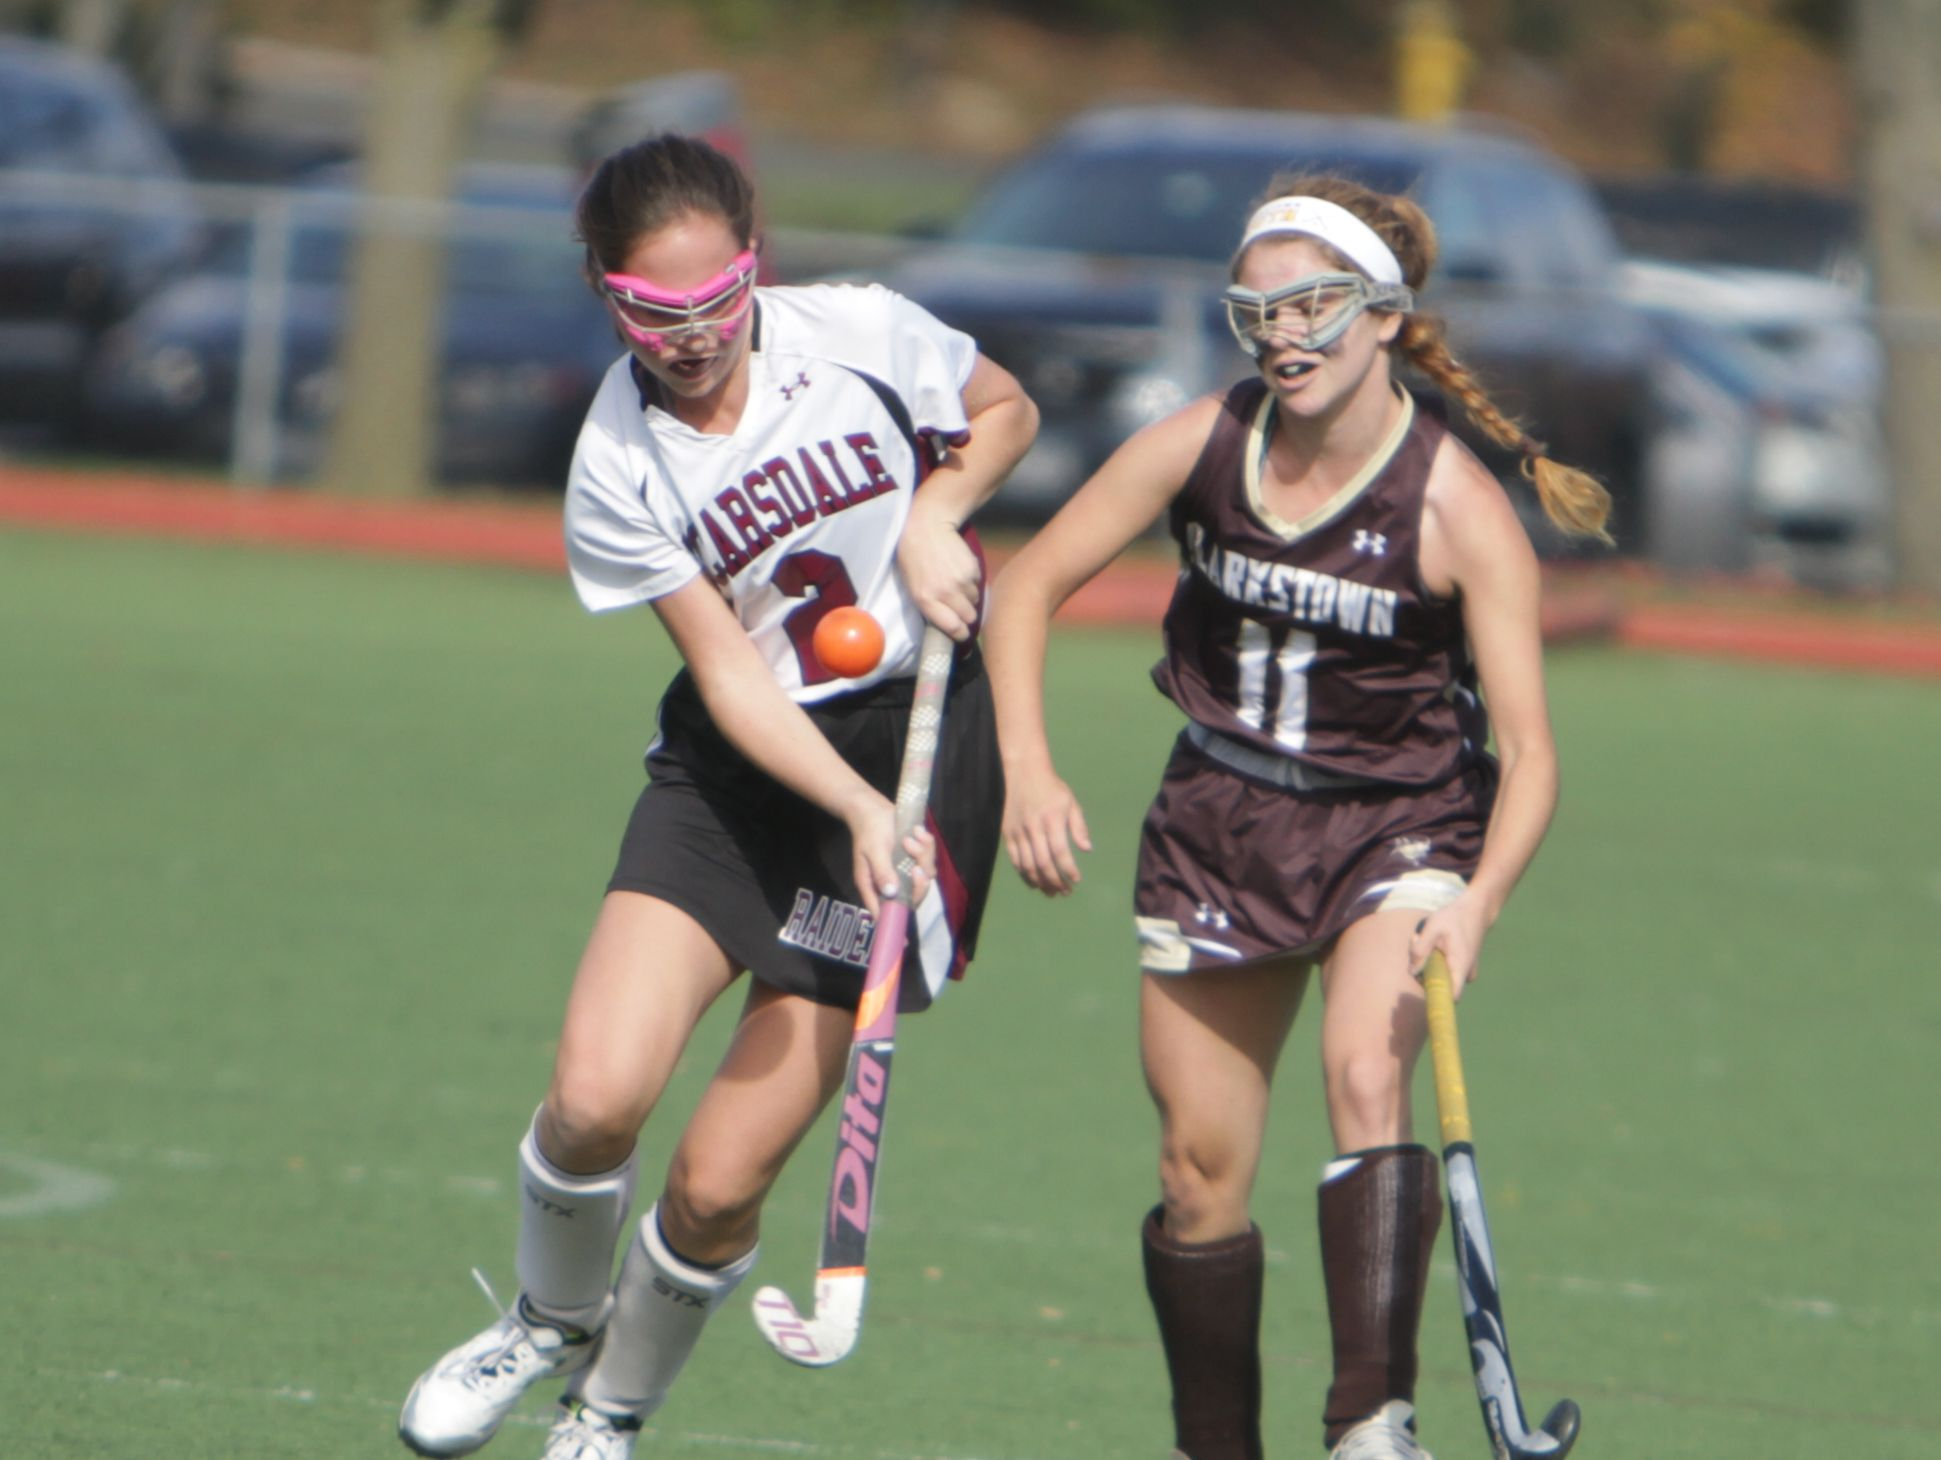 Scarsdale's Elizabeth Scarcella (left) and Clarkstown South's Dara Studnitzer battle for possession during a Section 1, Class A field hockey semifinal game between Scarsdale and Clarkstown South at Scarsdale High School on Saturday, Oct. 29, 2016. Scarsdale won 7-1.